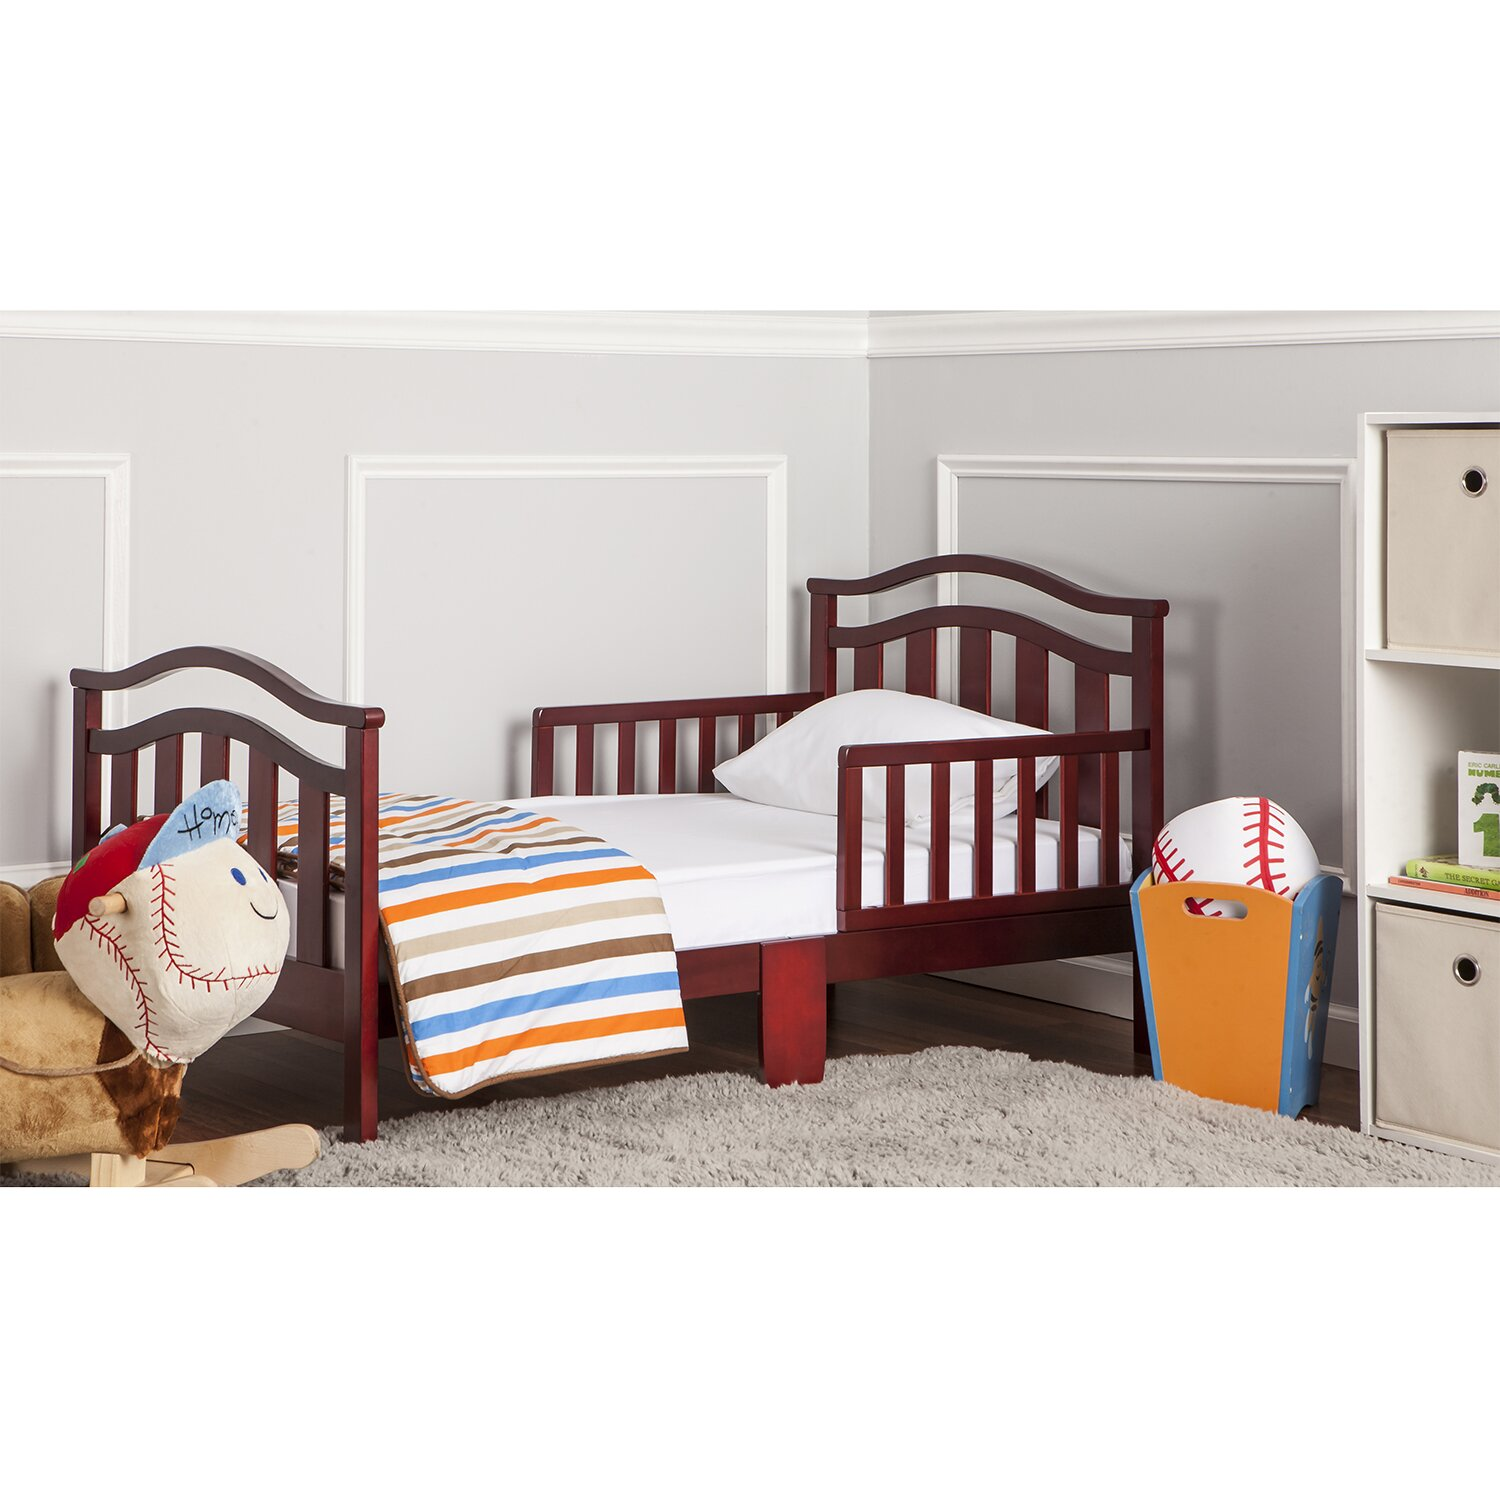 Dream On Me Full Size Bed Rails